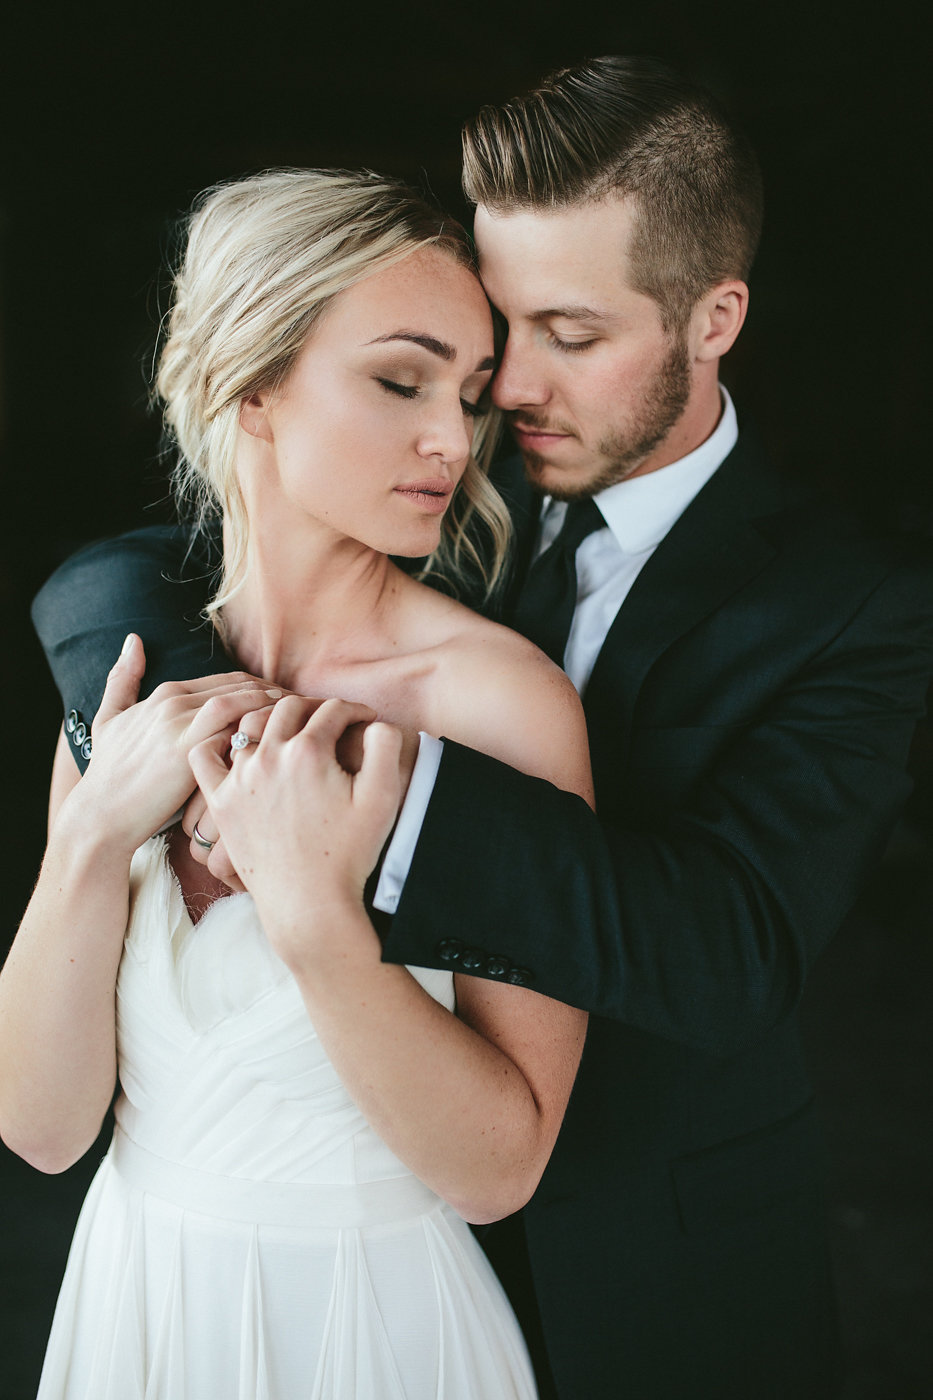 wedding photography - photo by Hannah Victoria Photography https://ruffledblog.com/rich-toned-industrial-wedding-inspiration